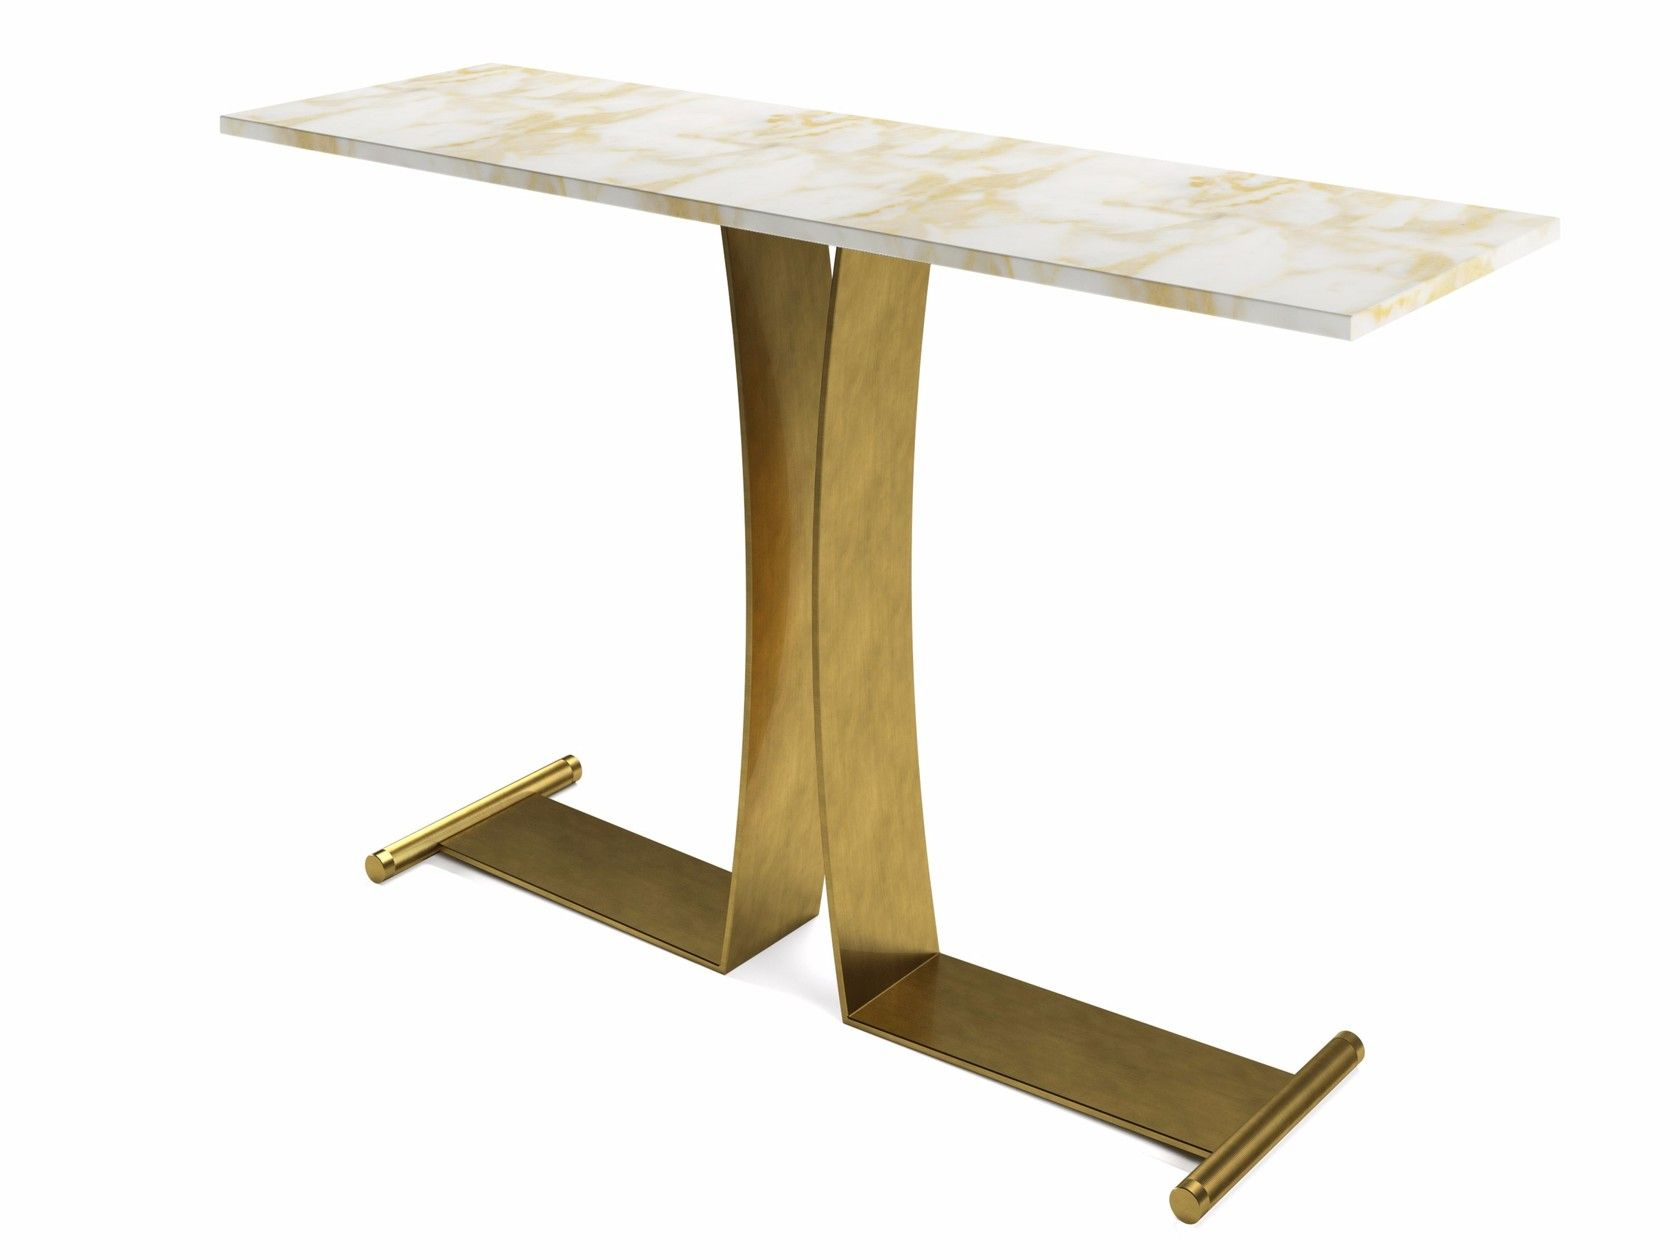 Guy | Console Table In 2018 | 1gja Console Tables | Pinterest For Parsons Concrete Top & Elm Base 48x16 Console Tables (View 10 of 30)